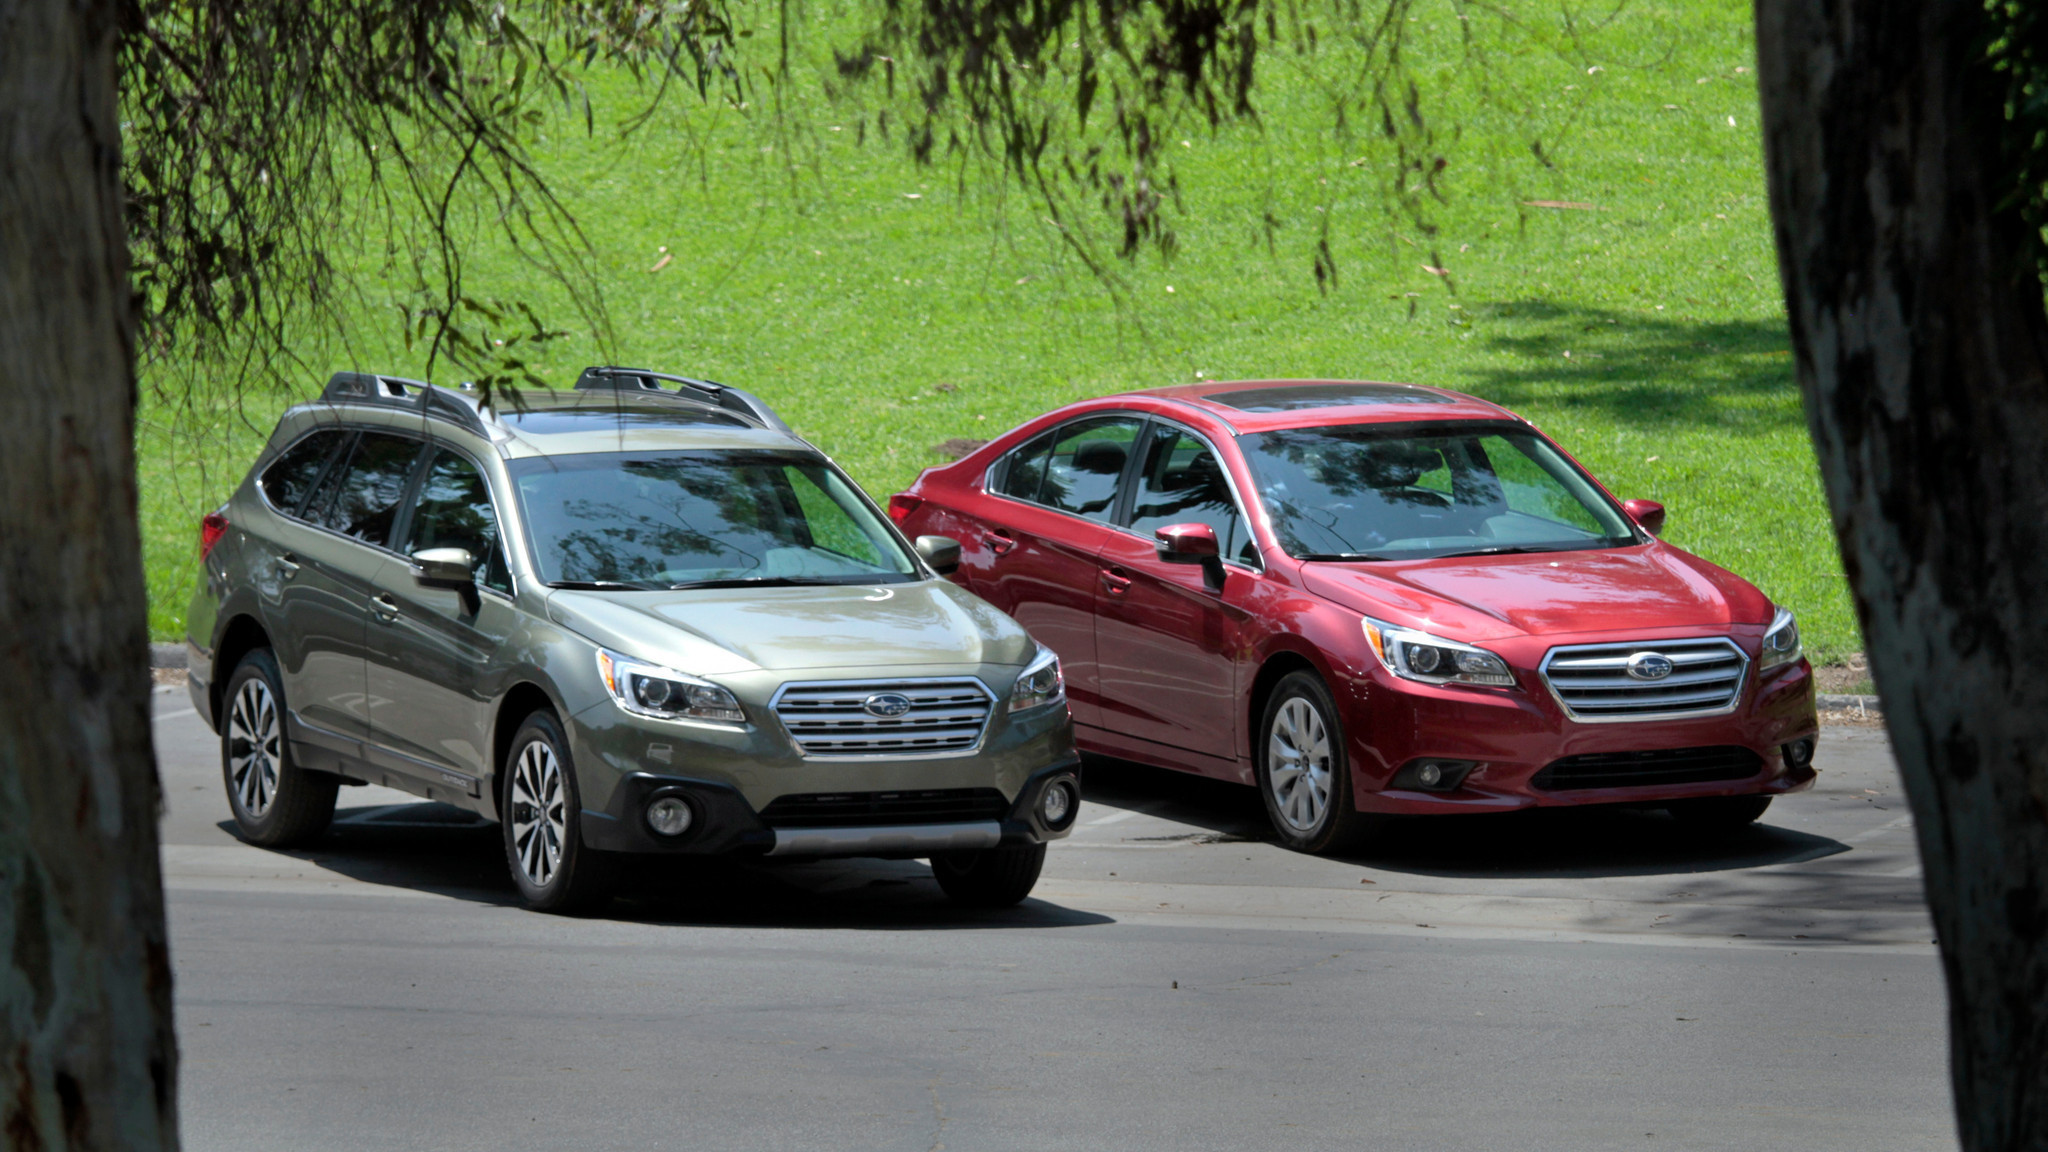 Subaru tells some Legacy and Outback owners: Don't drive them - LA Times